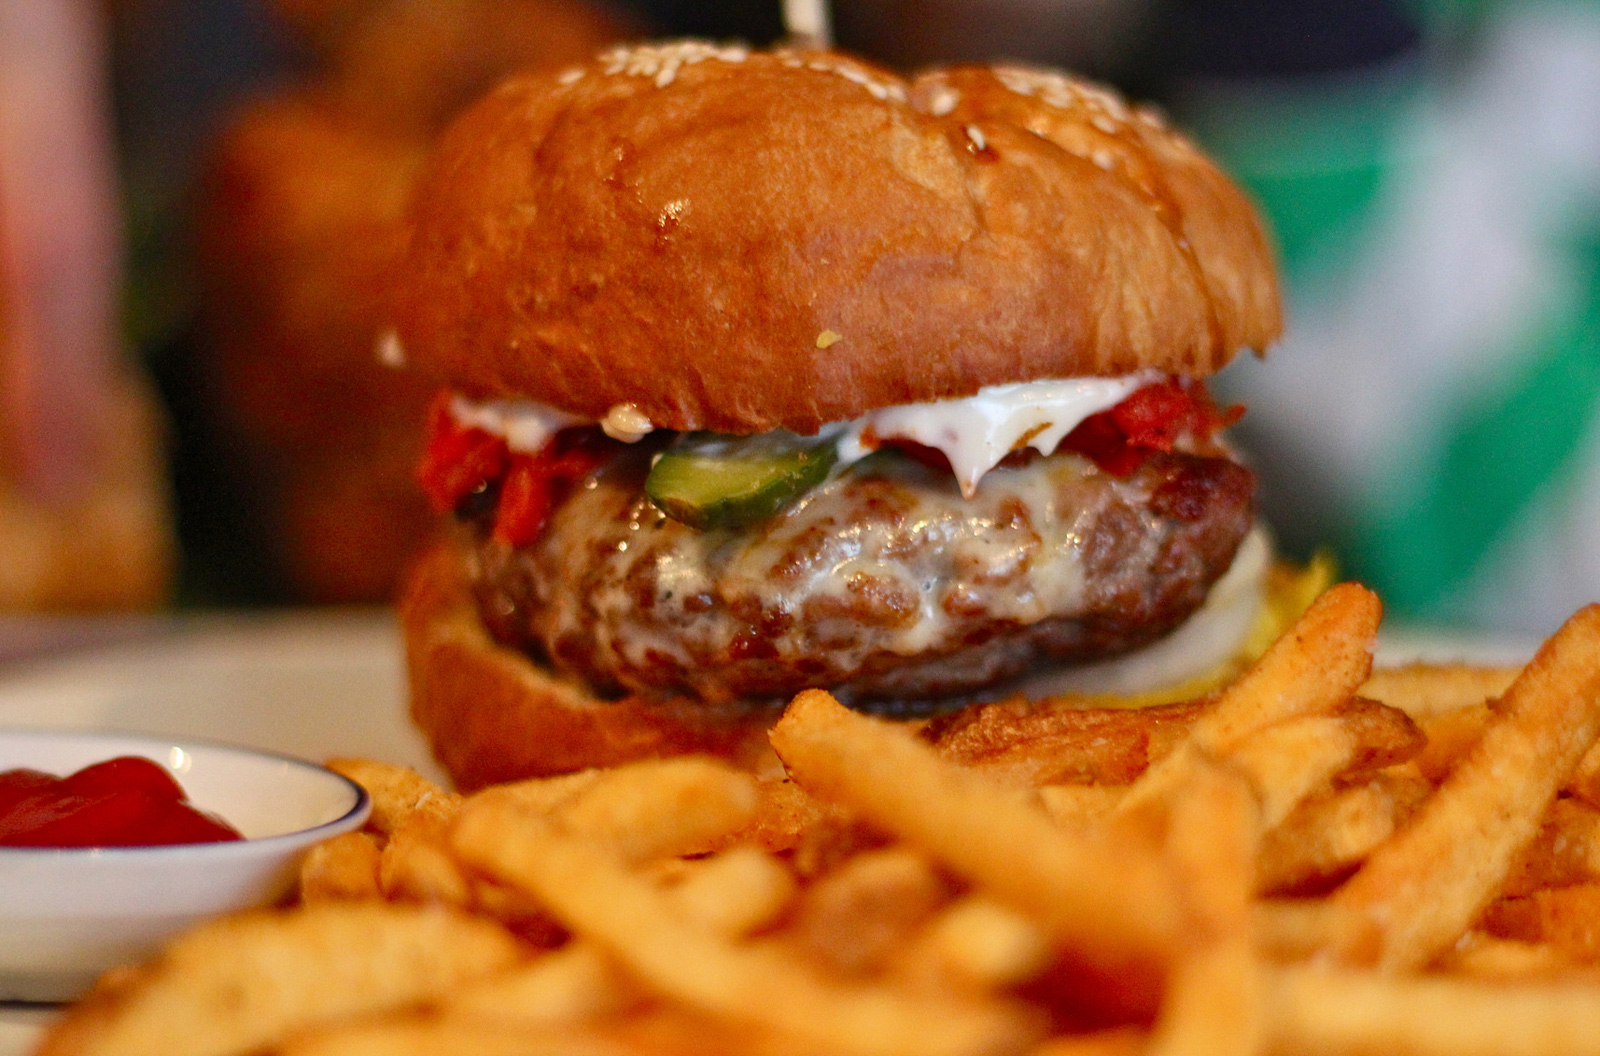 On the Story of Angostura Bitters and Making Burgers the Old Fashioned Way